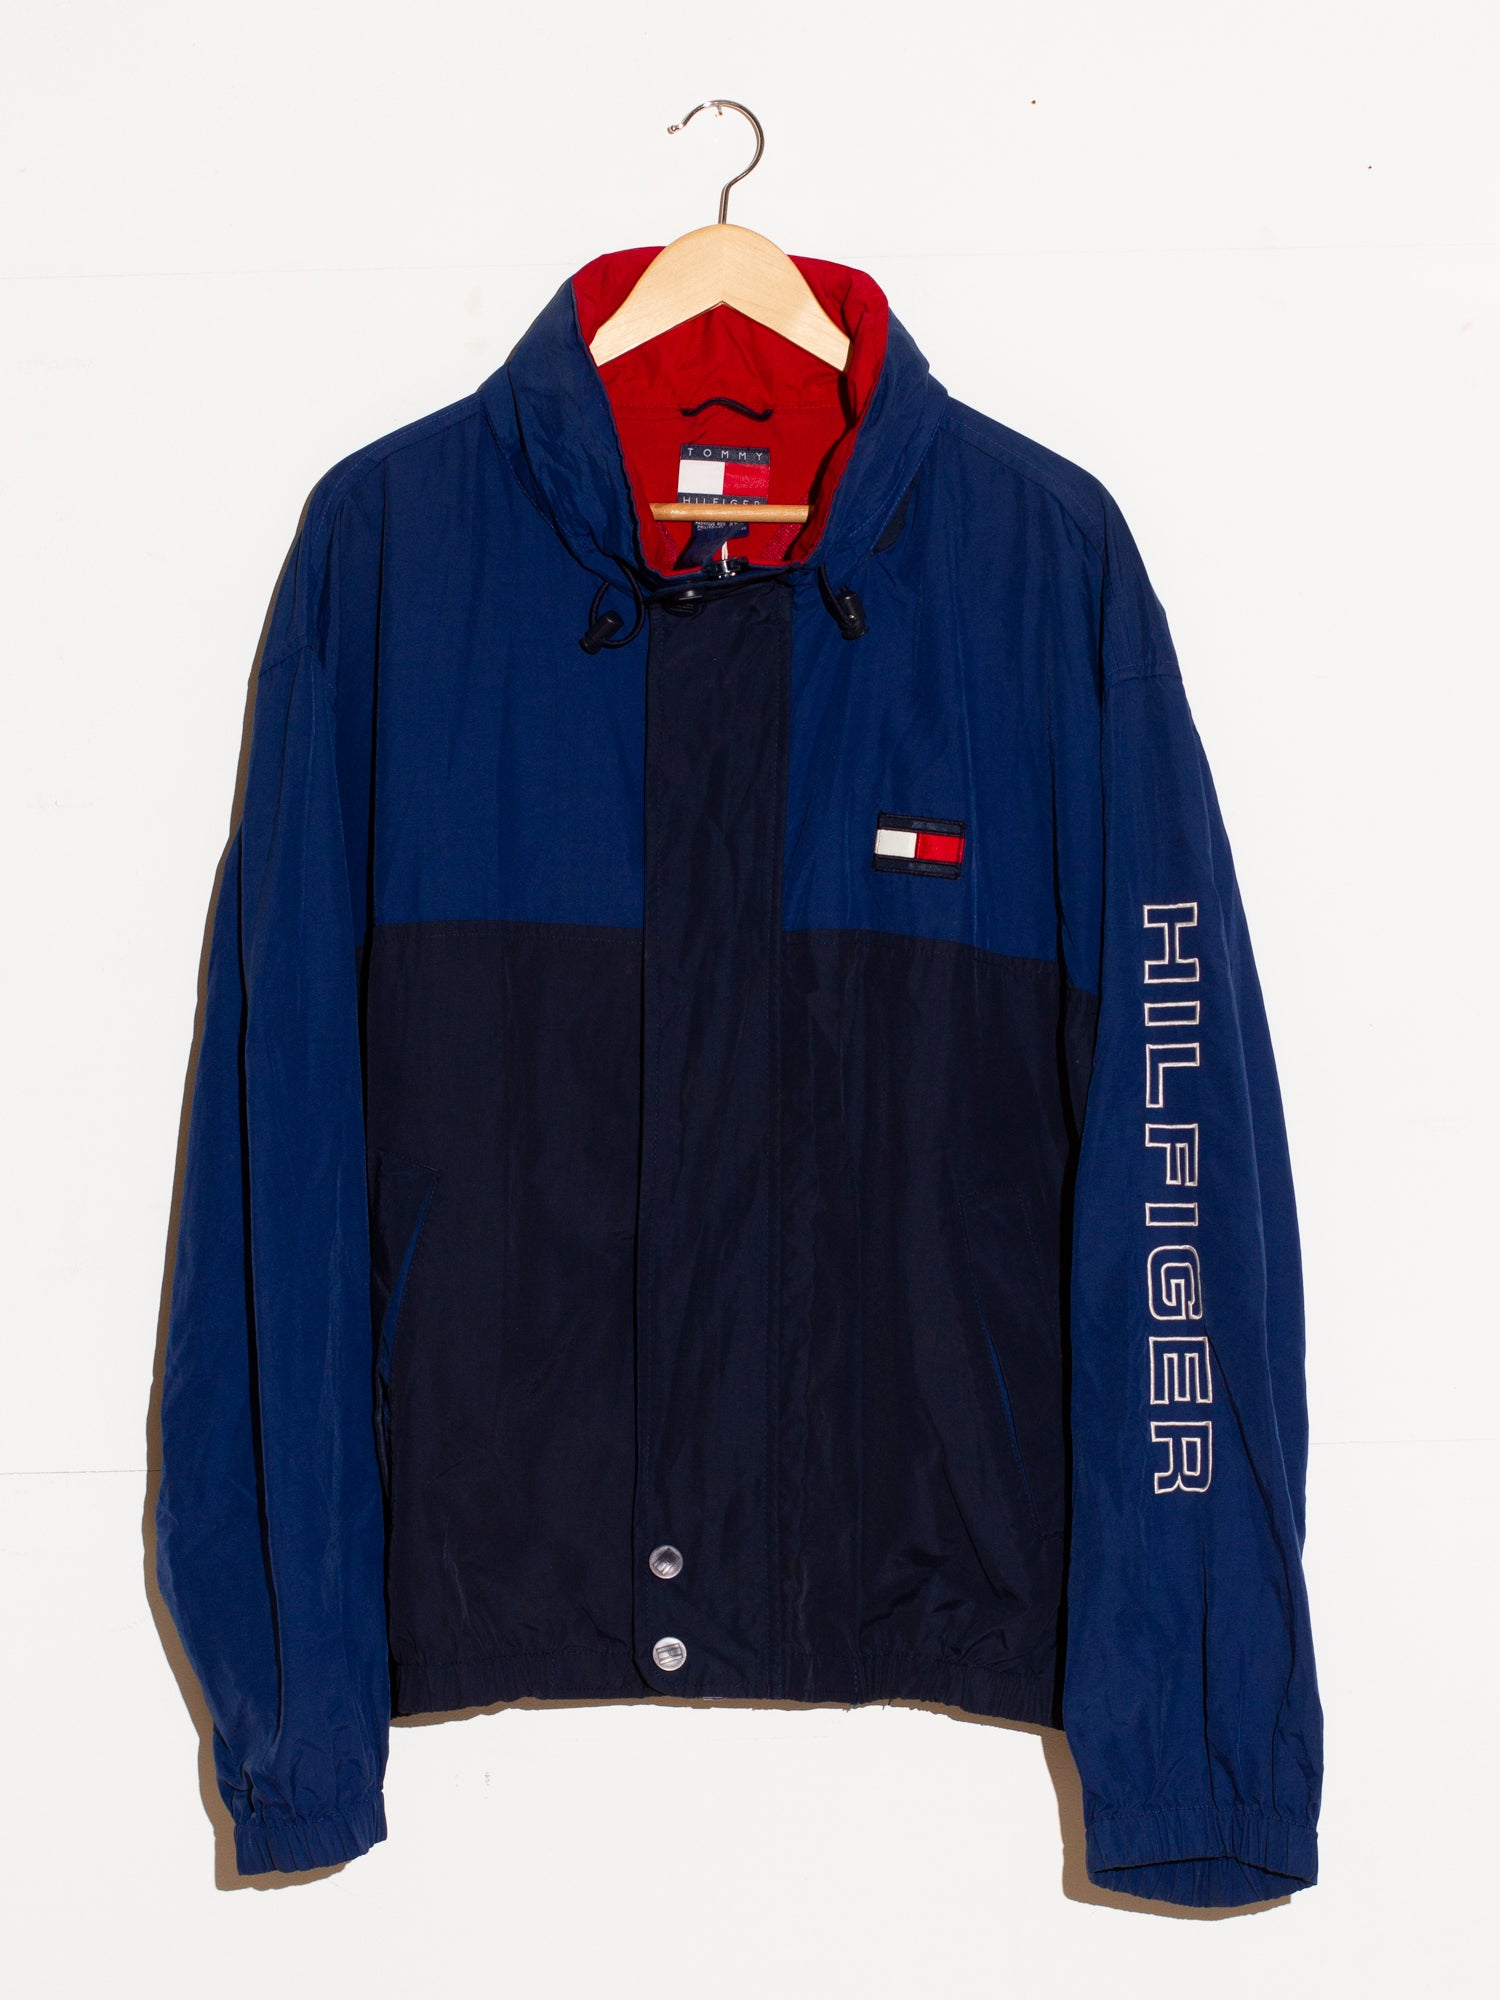 TOMMY HILFIGER HOODLESS WINTER JACKET